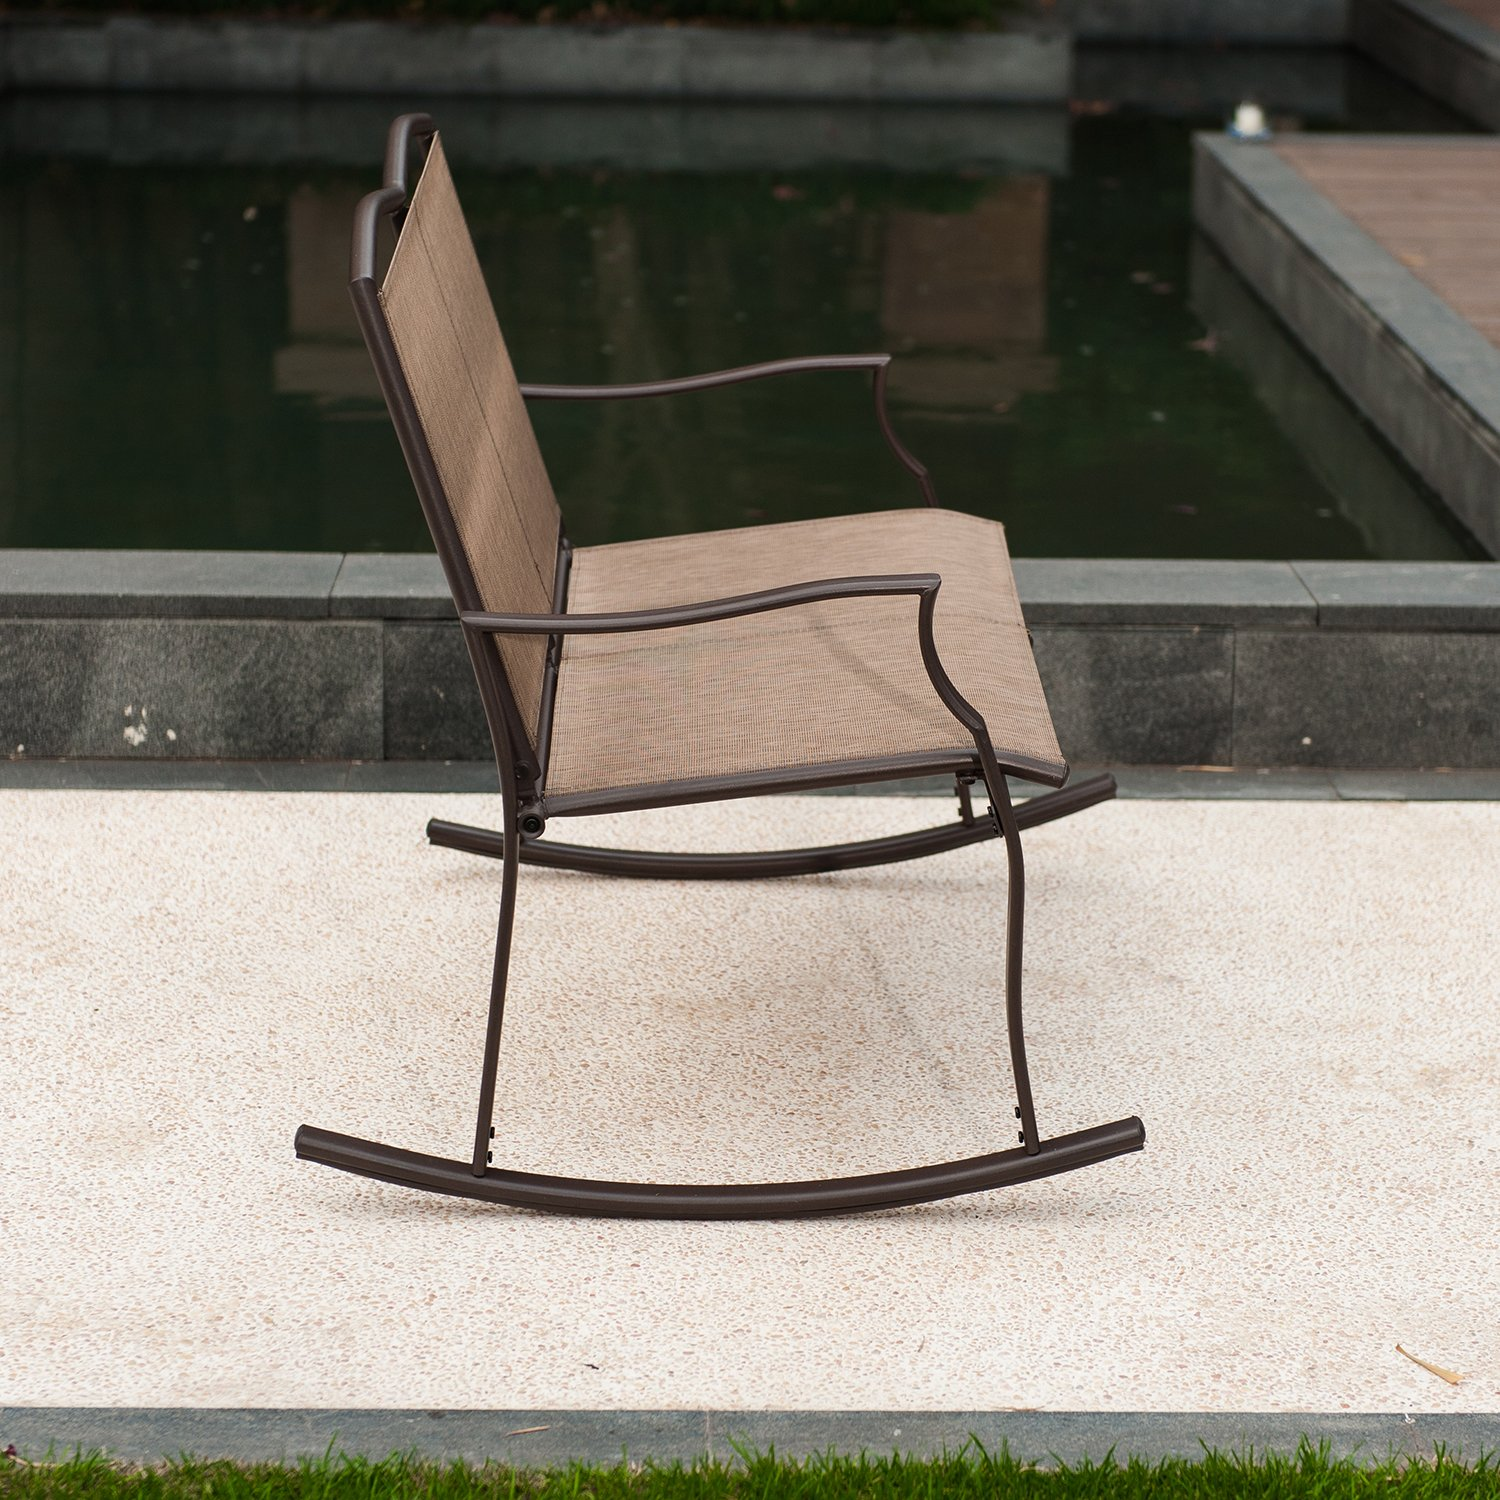 Patio Loveseat Bench, Glider Swing Rocking Chair with Steel Frame for 2 Persons by SLN (Image #4)